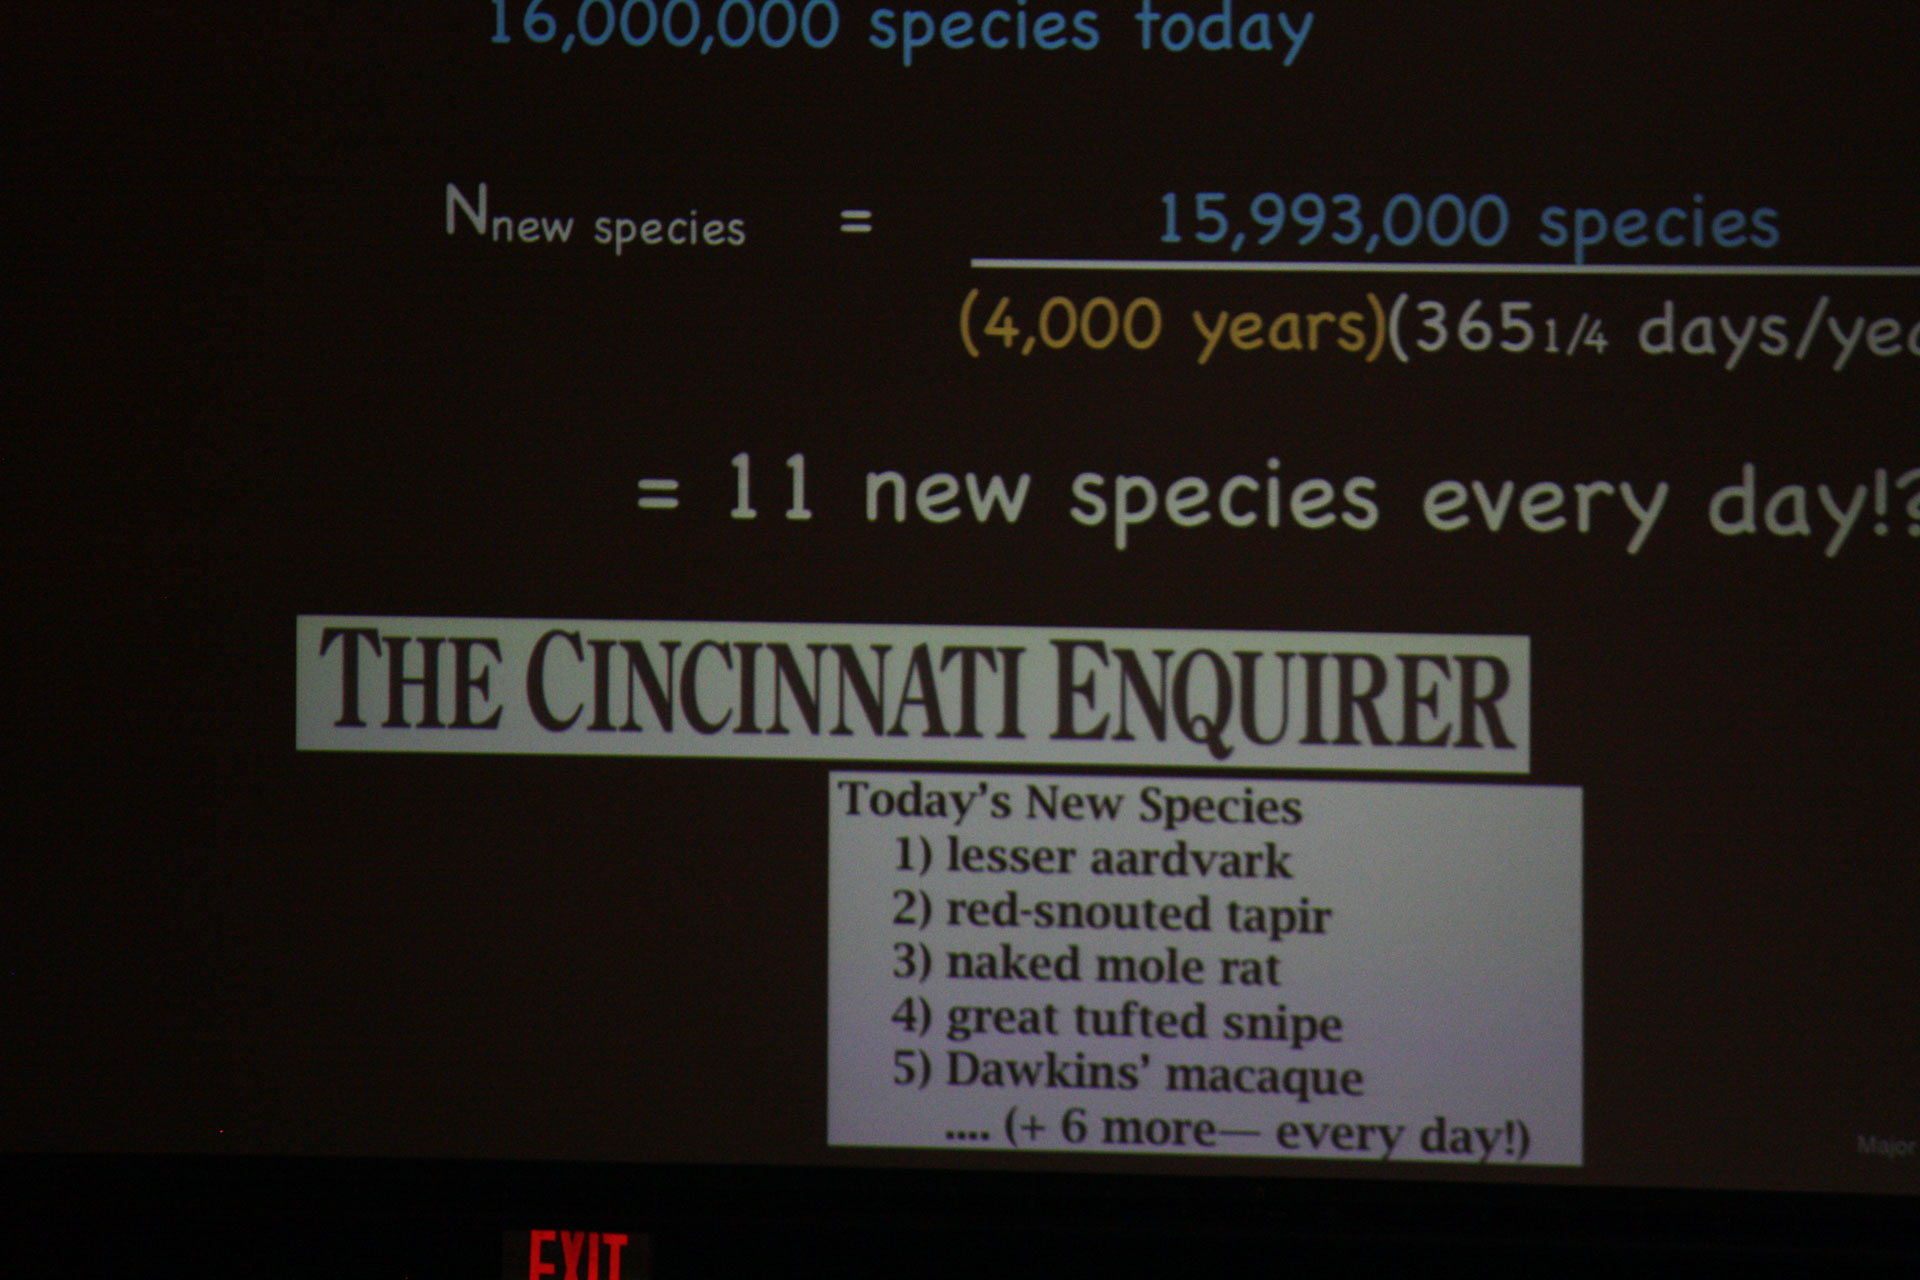 Given the number of species in the world, we should have been discovering about 11 per day since the flood, if the chronology presented by Ken Ham were correct.